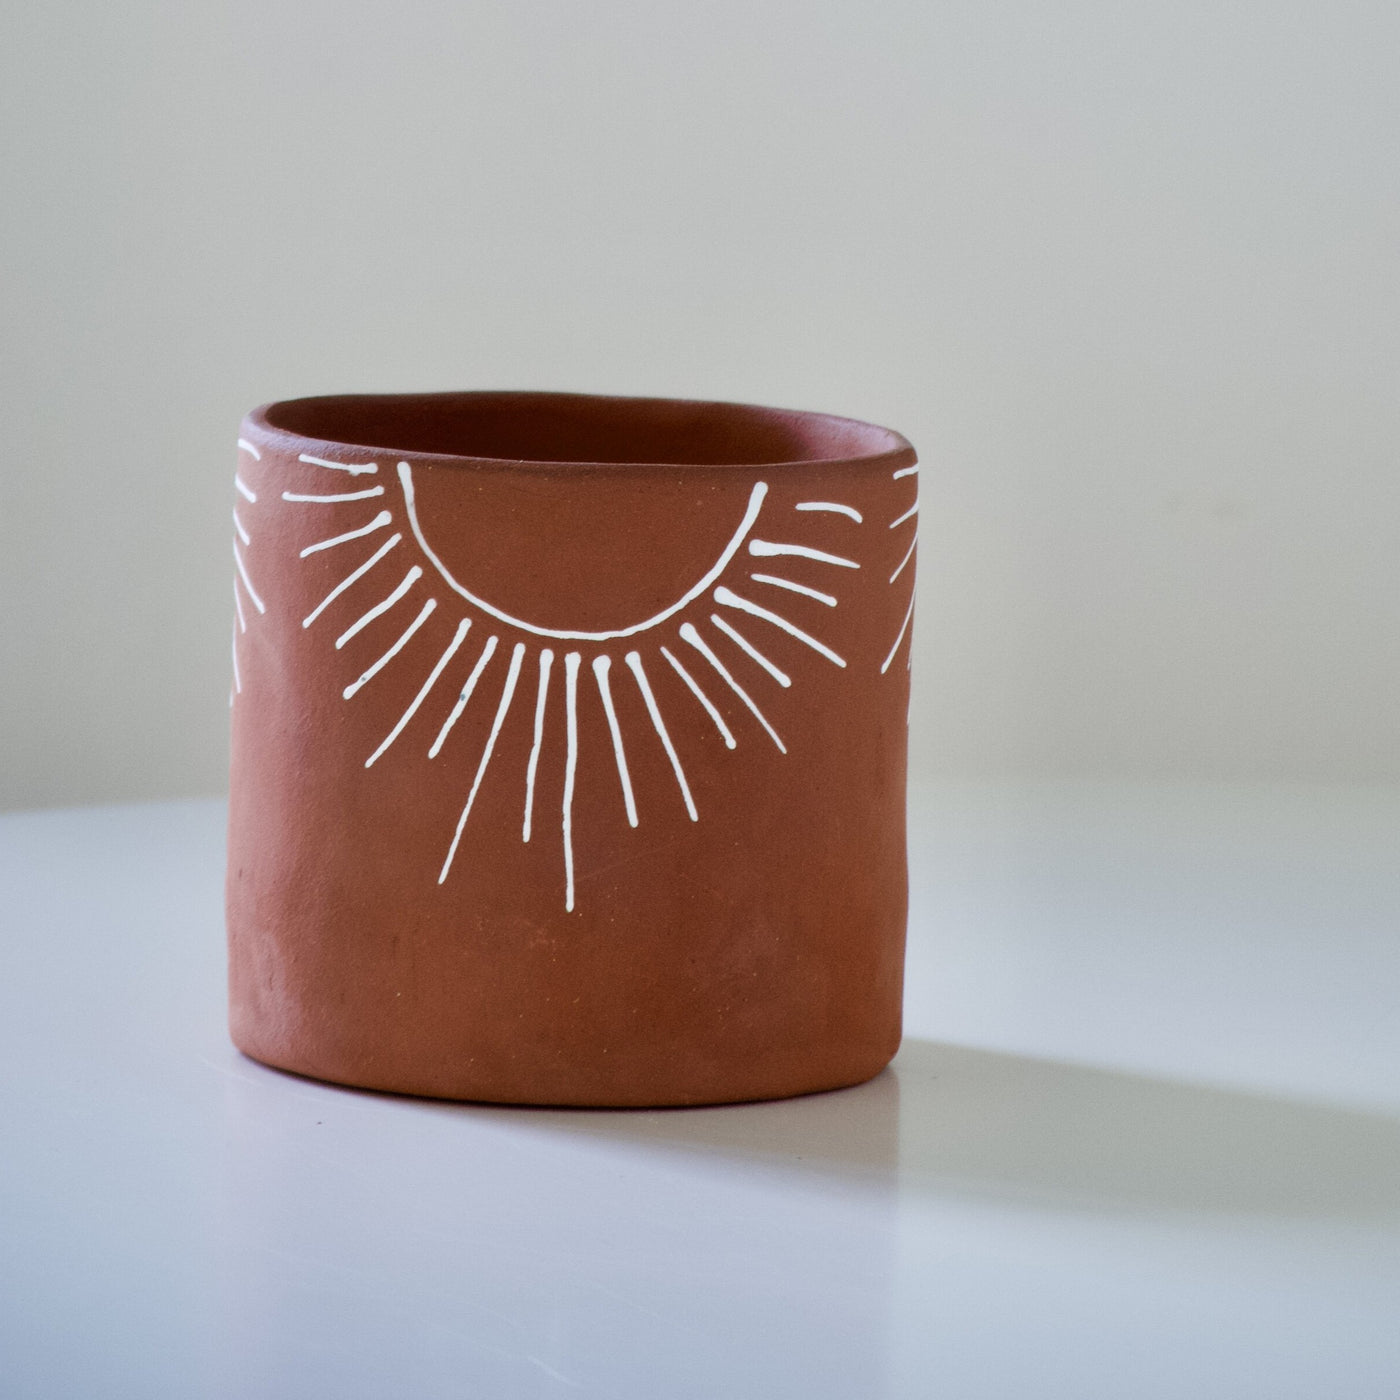 Kelsey Melville Ceramics: Sunburst Planter in Terracotta